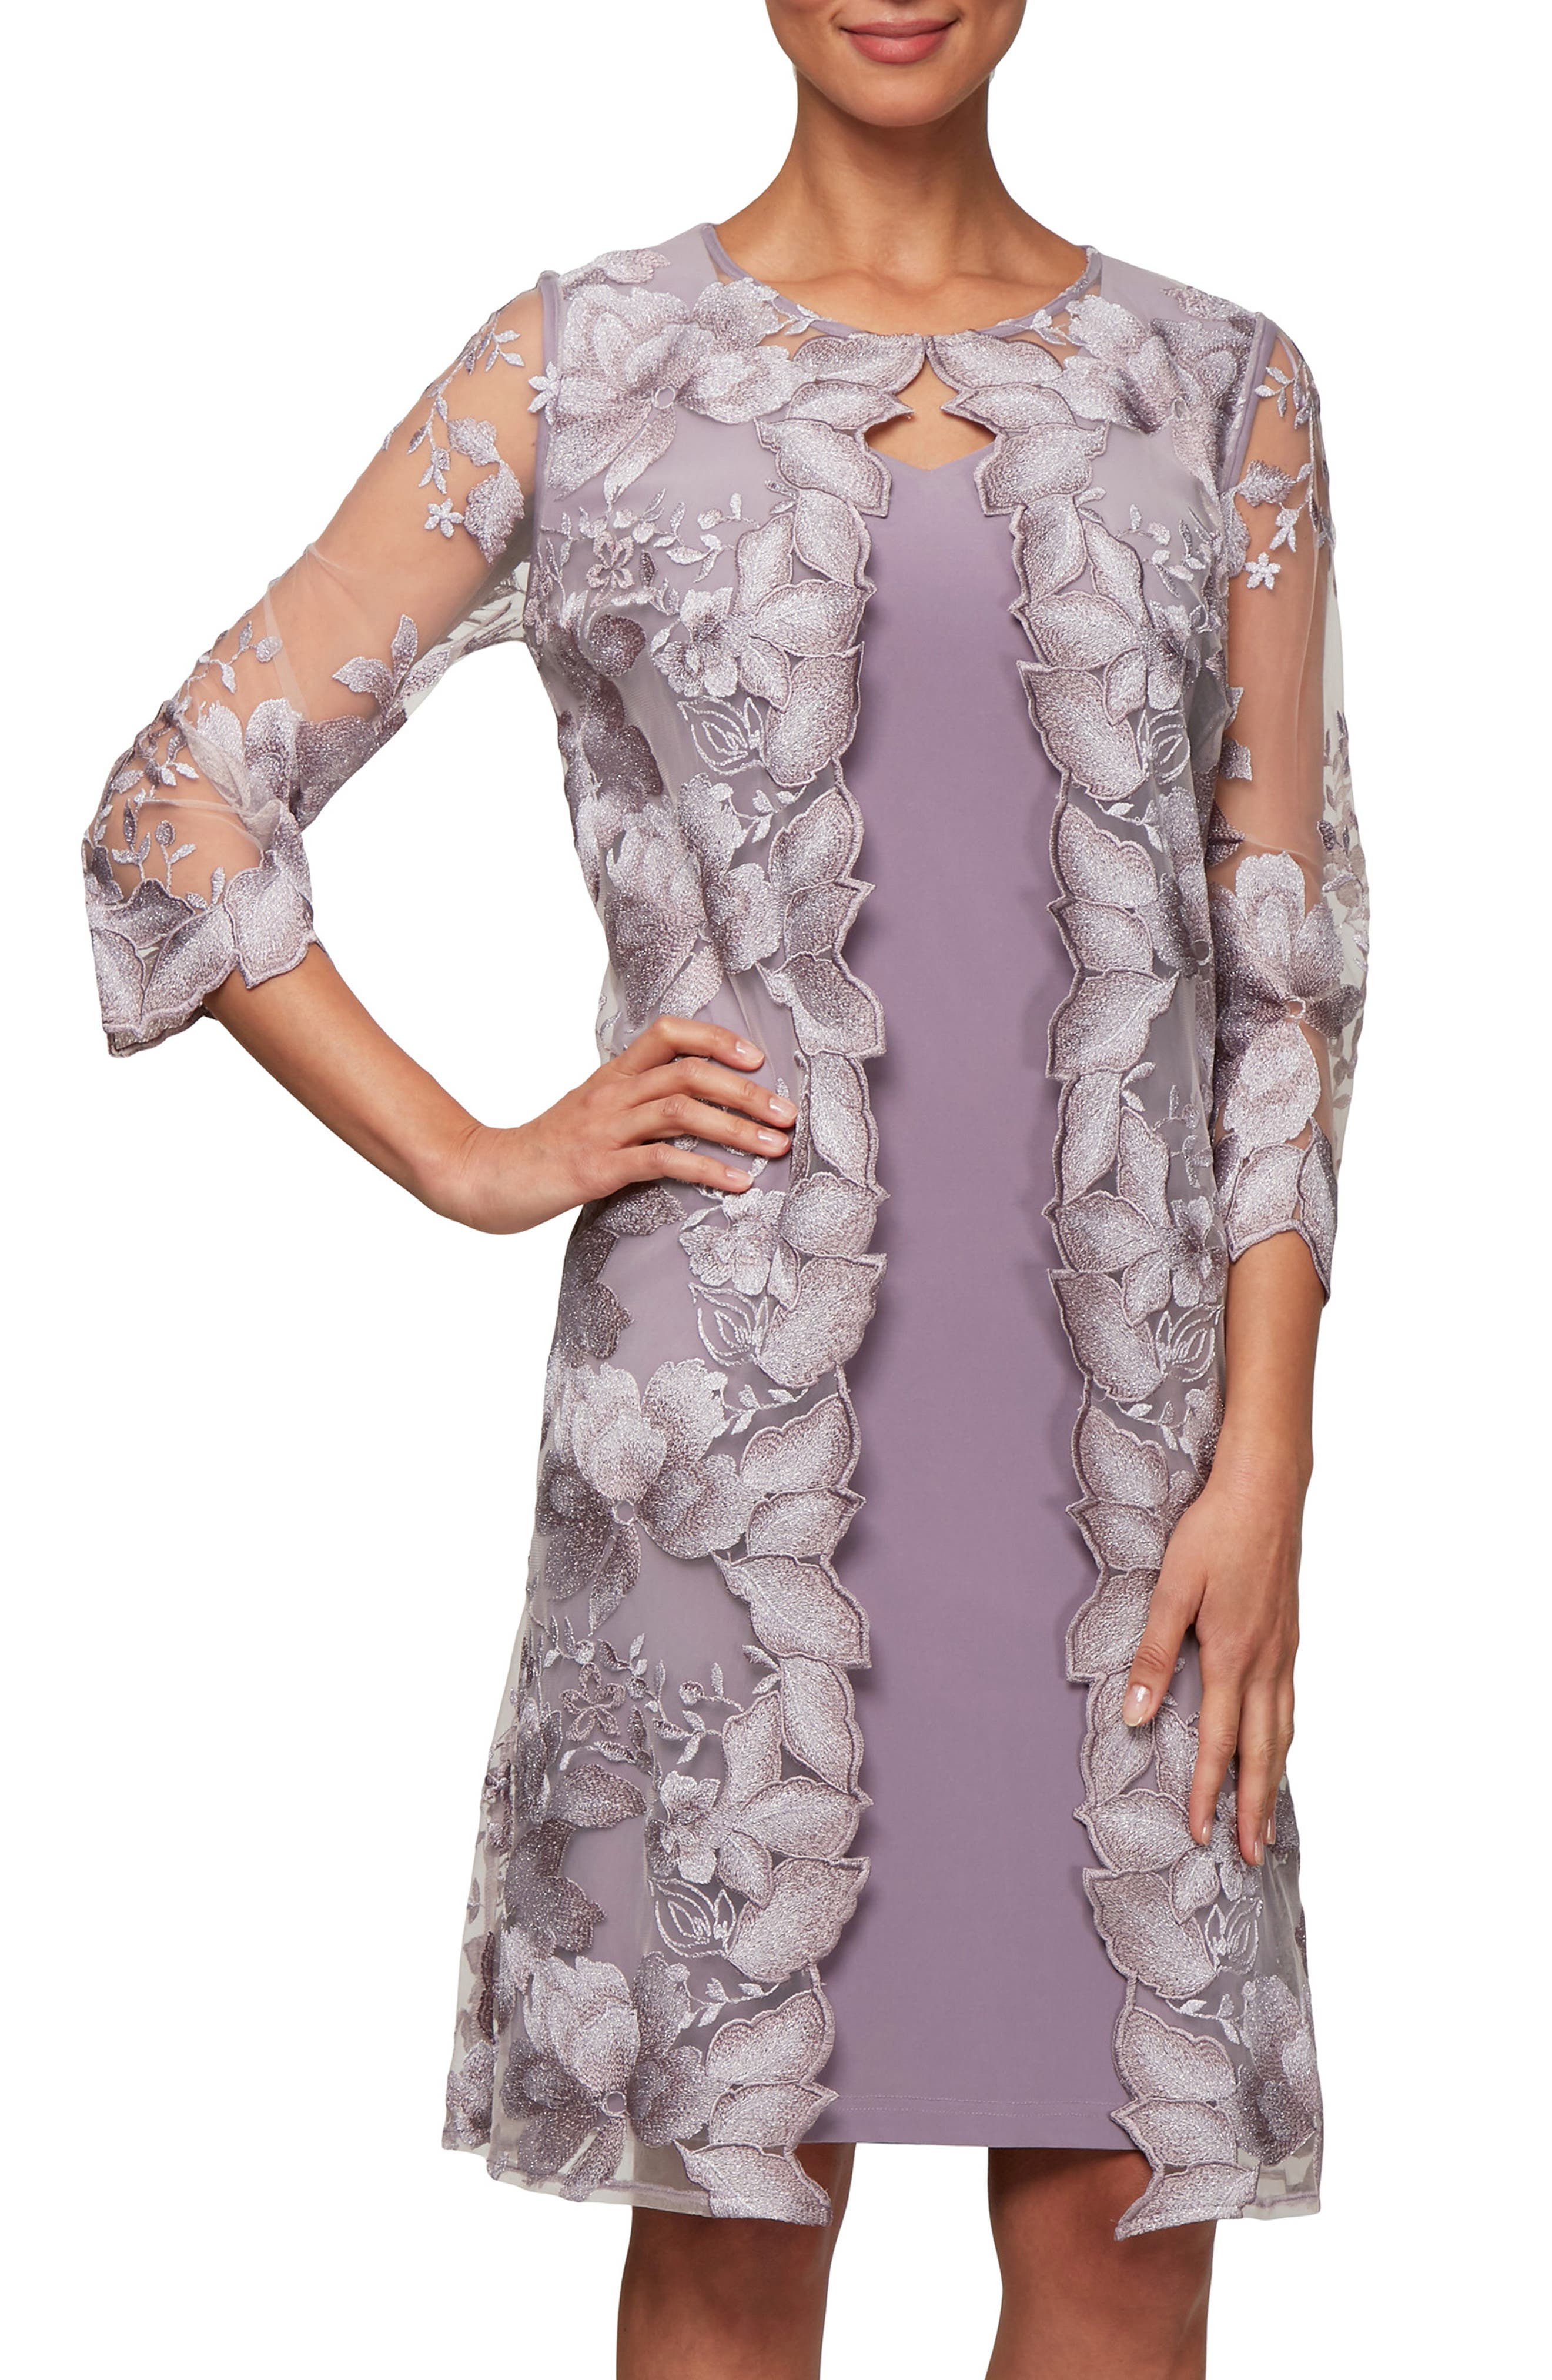 Petite Alex Evenings Embroidered Lace Mock Jacket Cocktail Dress, Pink